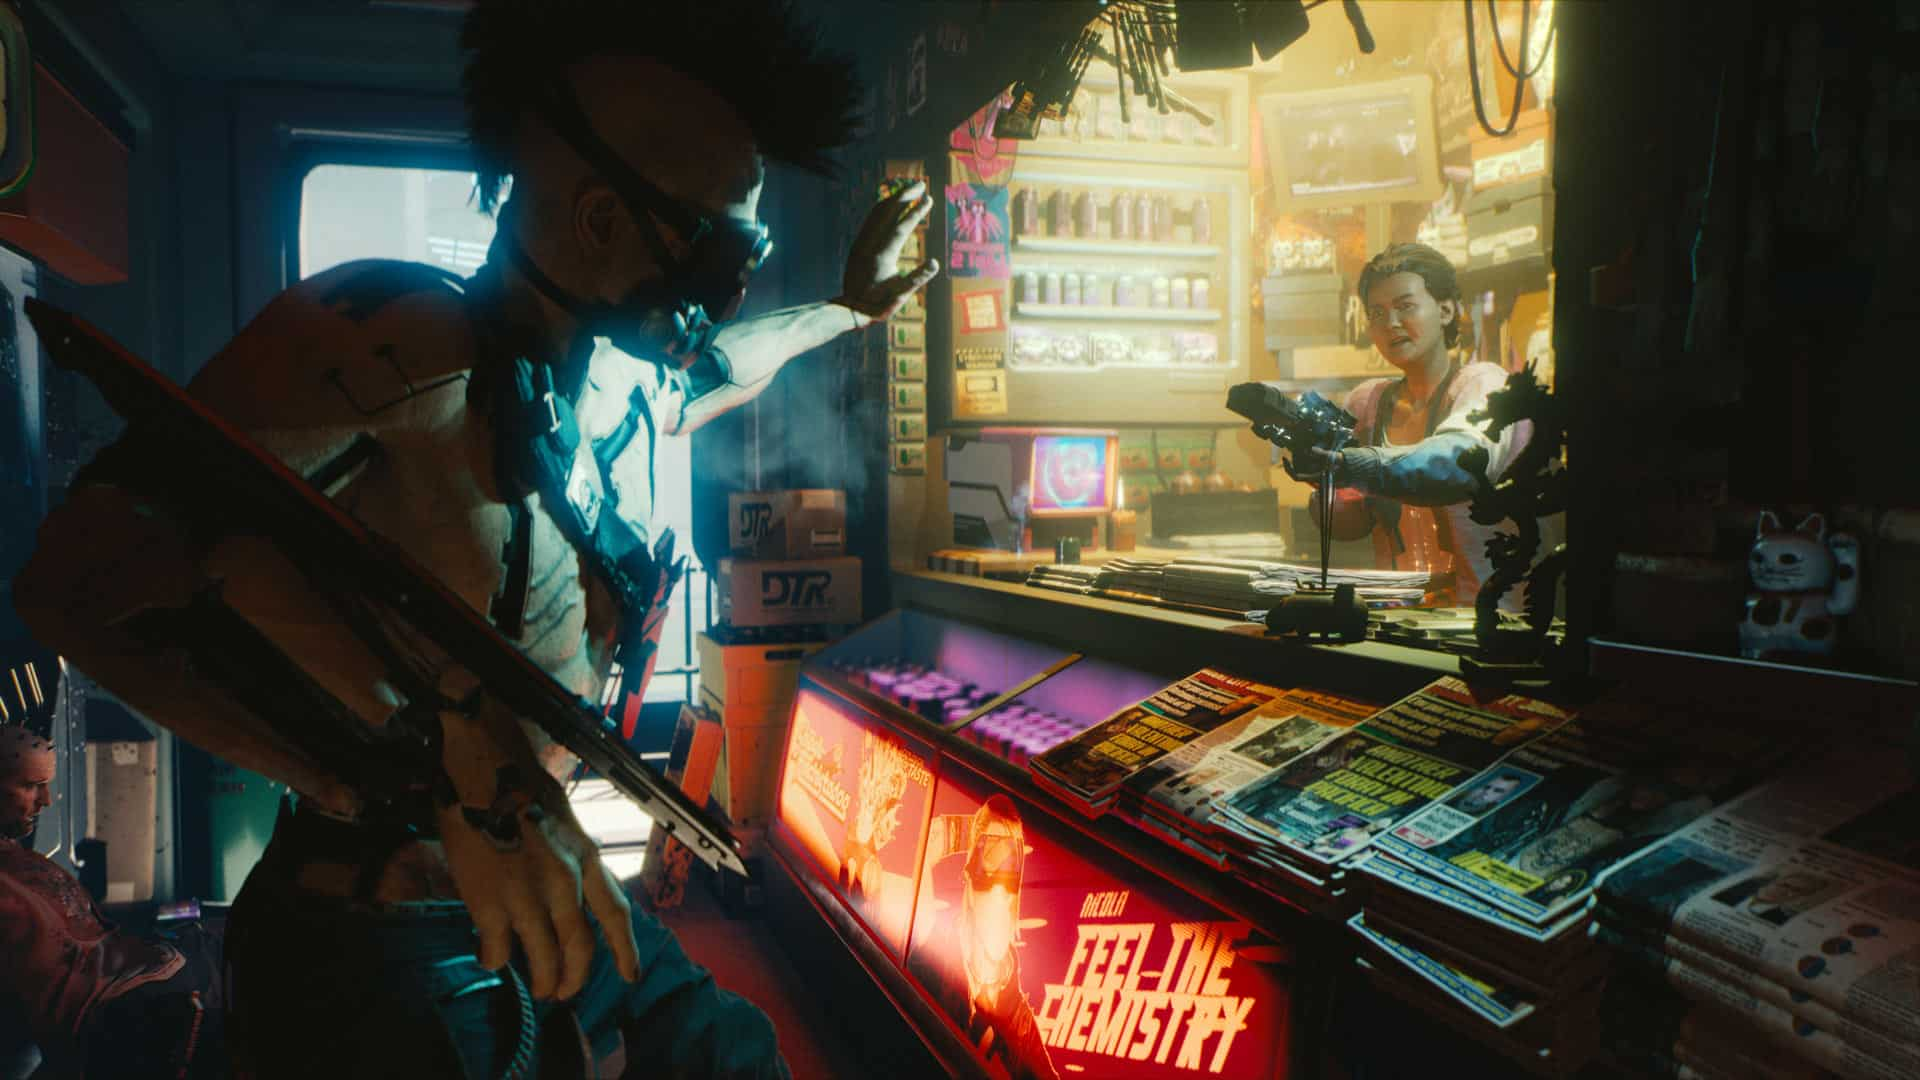 Relevant Things To Know About Cyberpunk 2077 Before Release